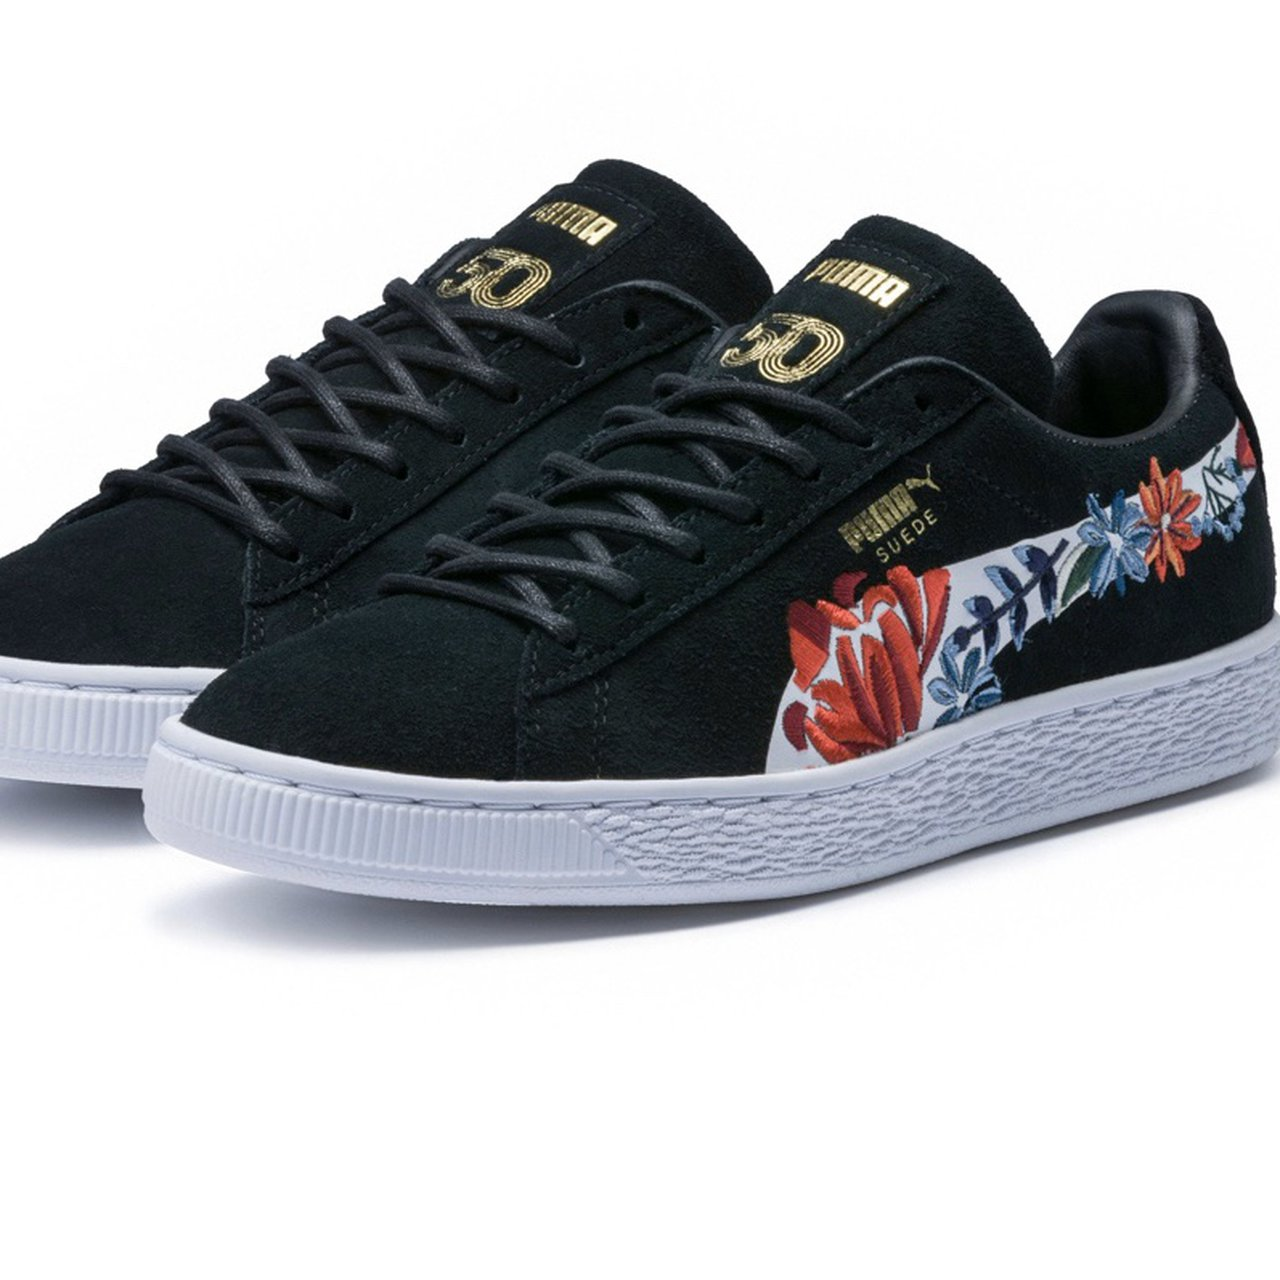 Puma Suede classic floral embroidered